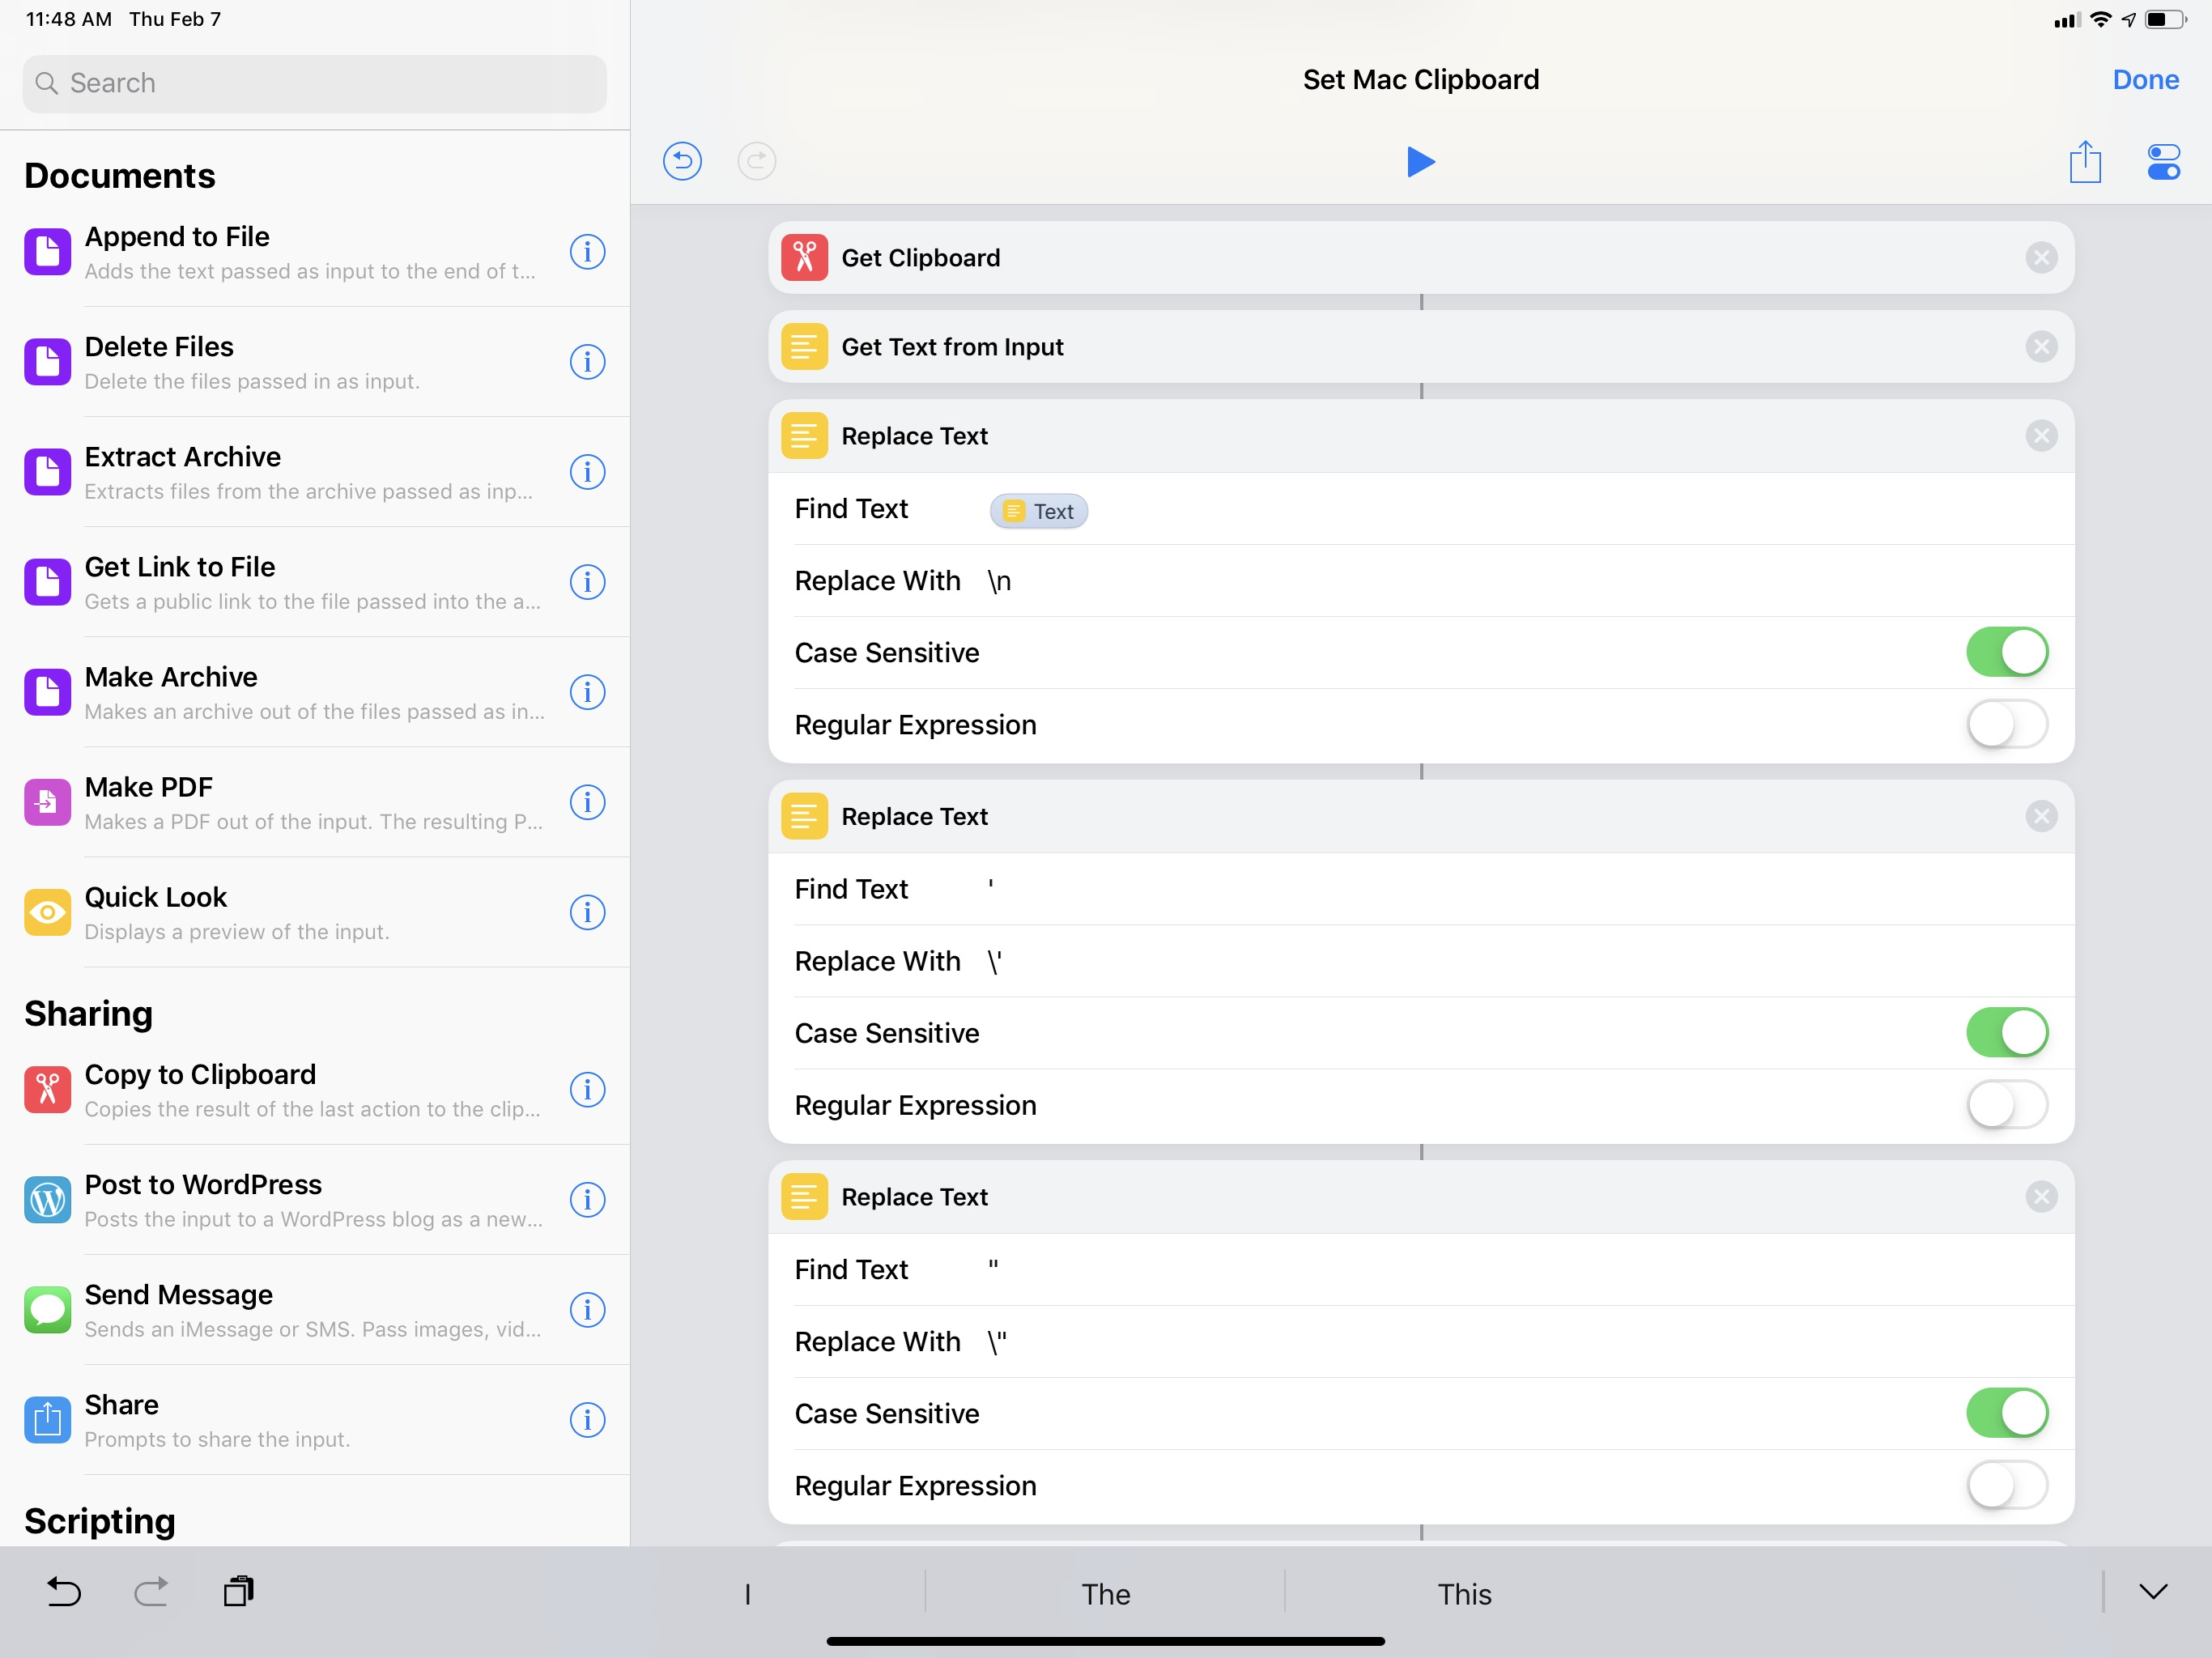 Cleaning up the iOS clipboard before sending it to a Mac.